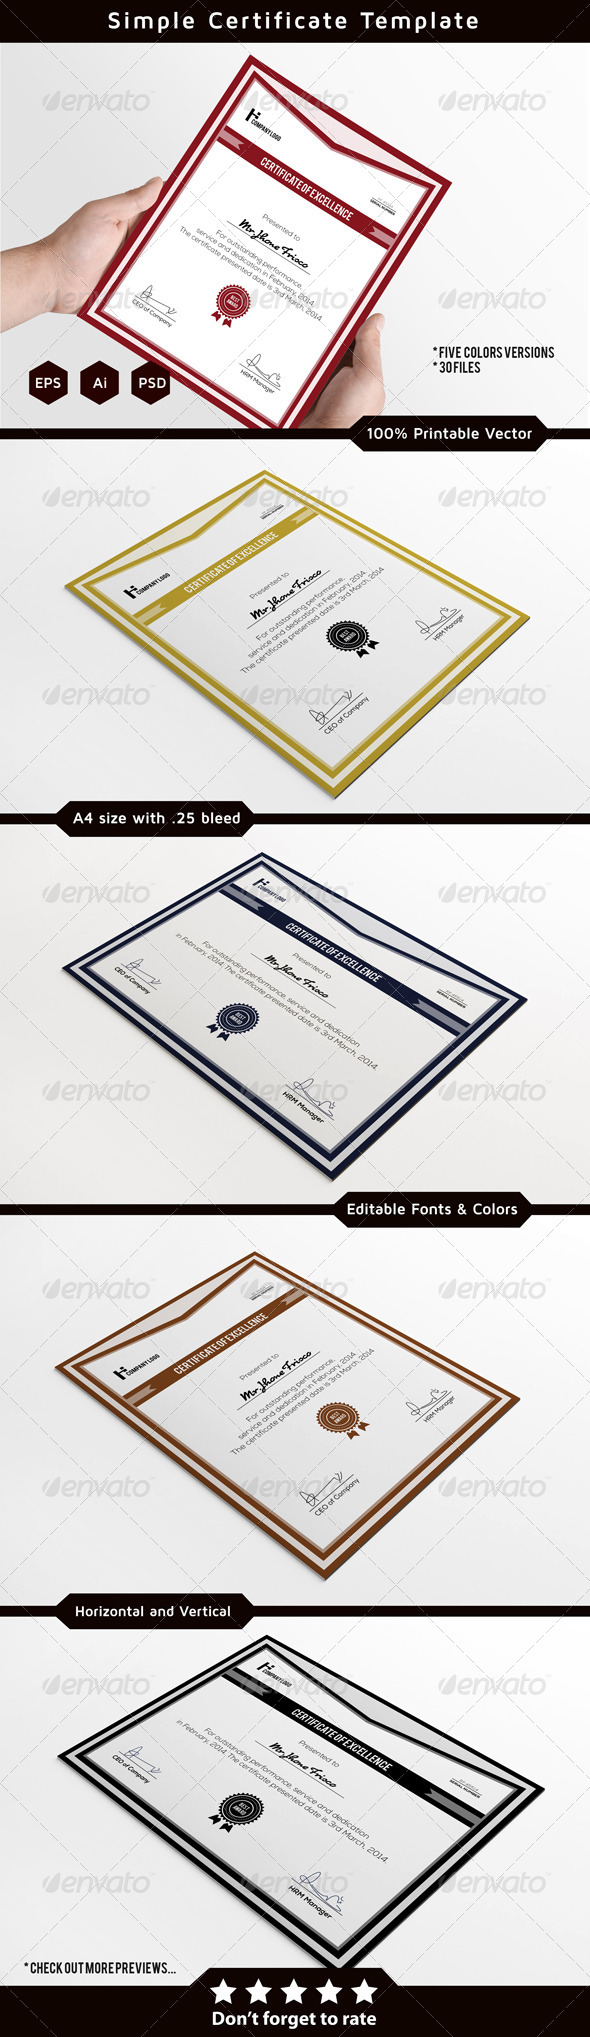 Corporate certificate template by nasirktk graphicriver corporate certificate template certificates stationery yelopaper Image collections